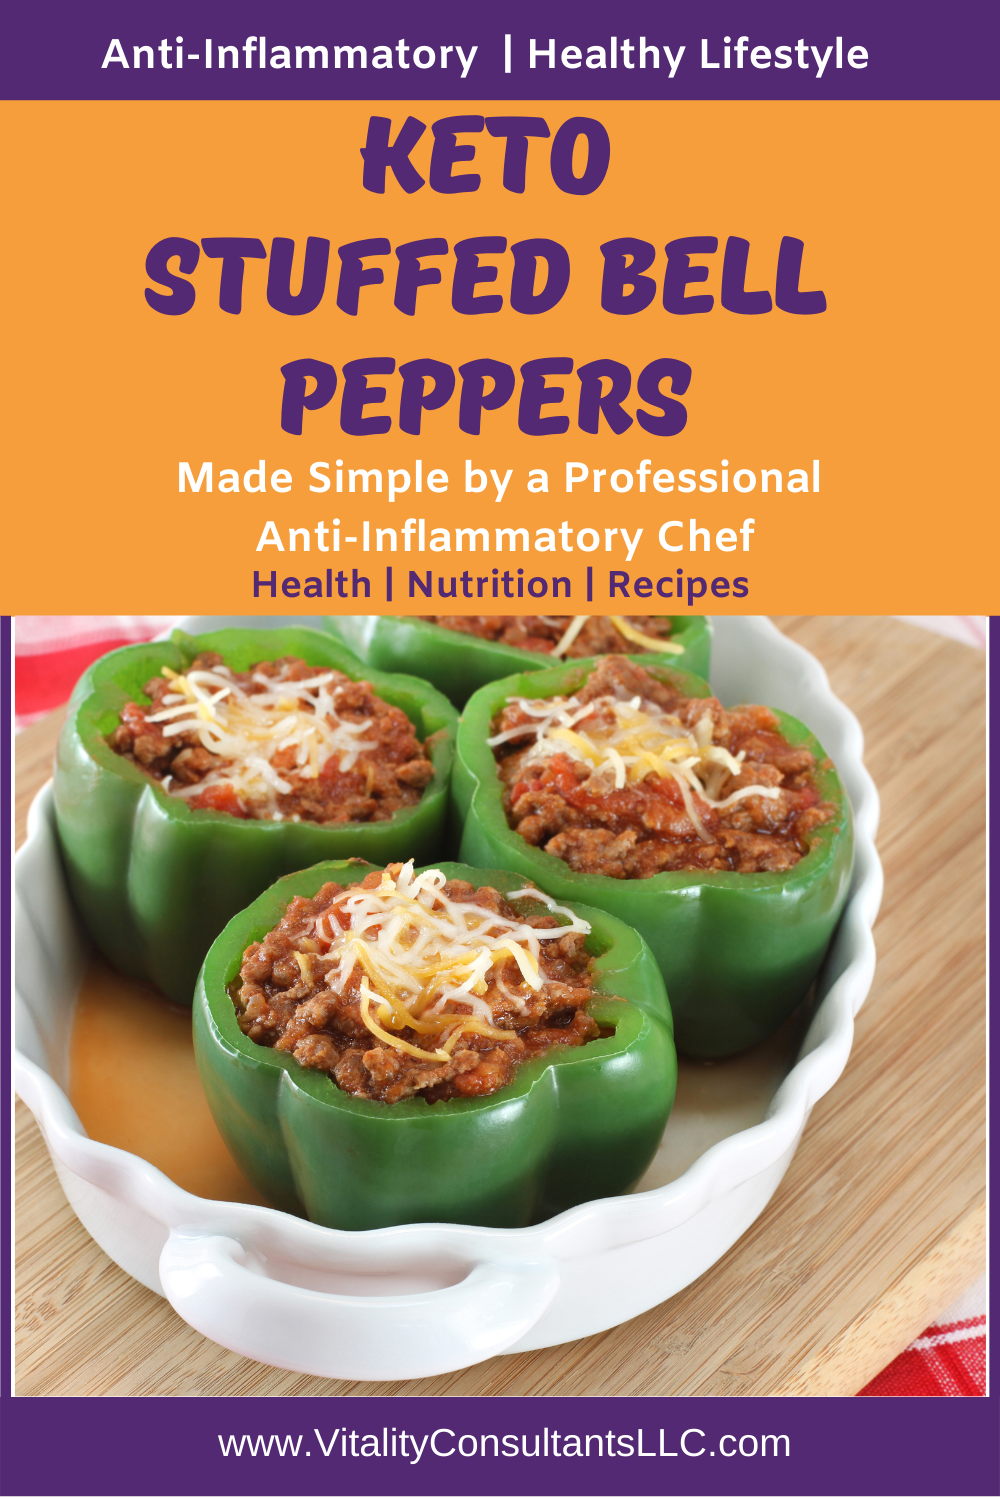 Keto Stuffed Bell Peppers Low Carb In 2020 Stuffed Peppers Anti Inflammatory Recipes Real Food Recipes